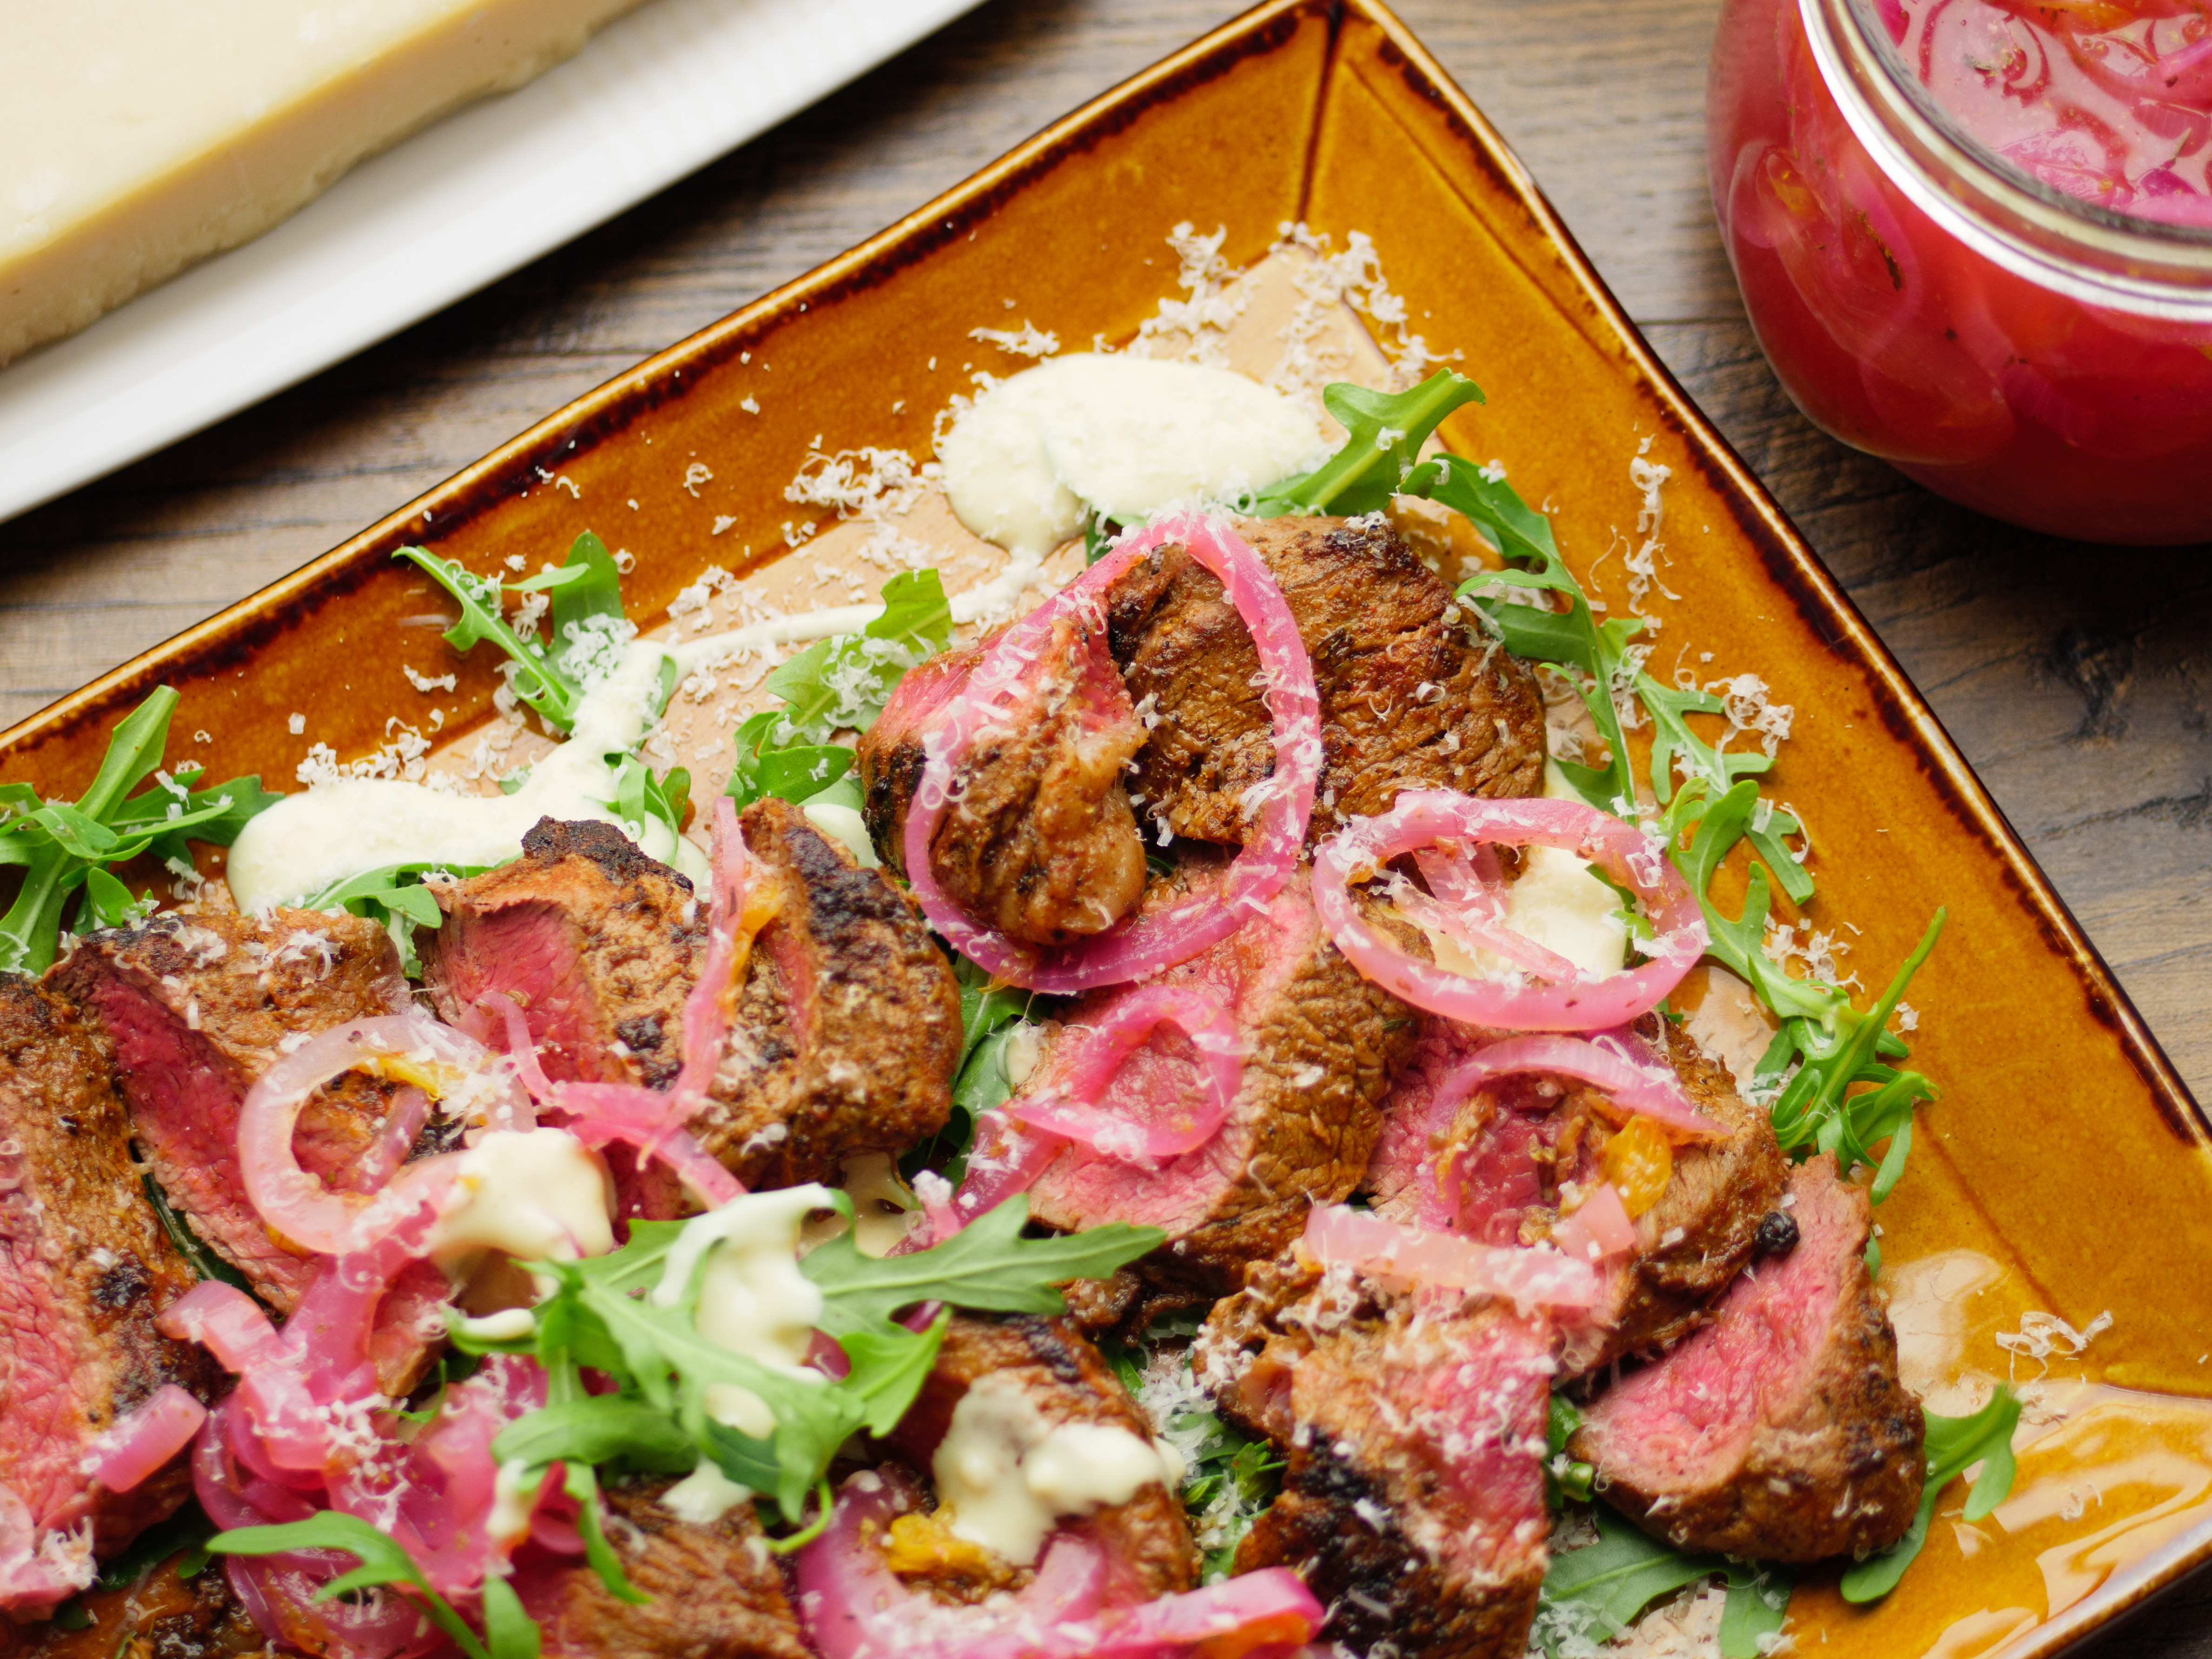 Smoky Beef and Pickled Onion Salad